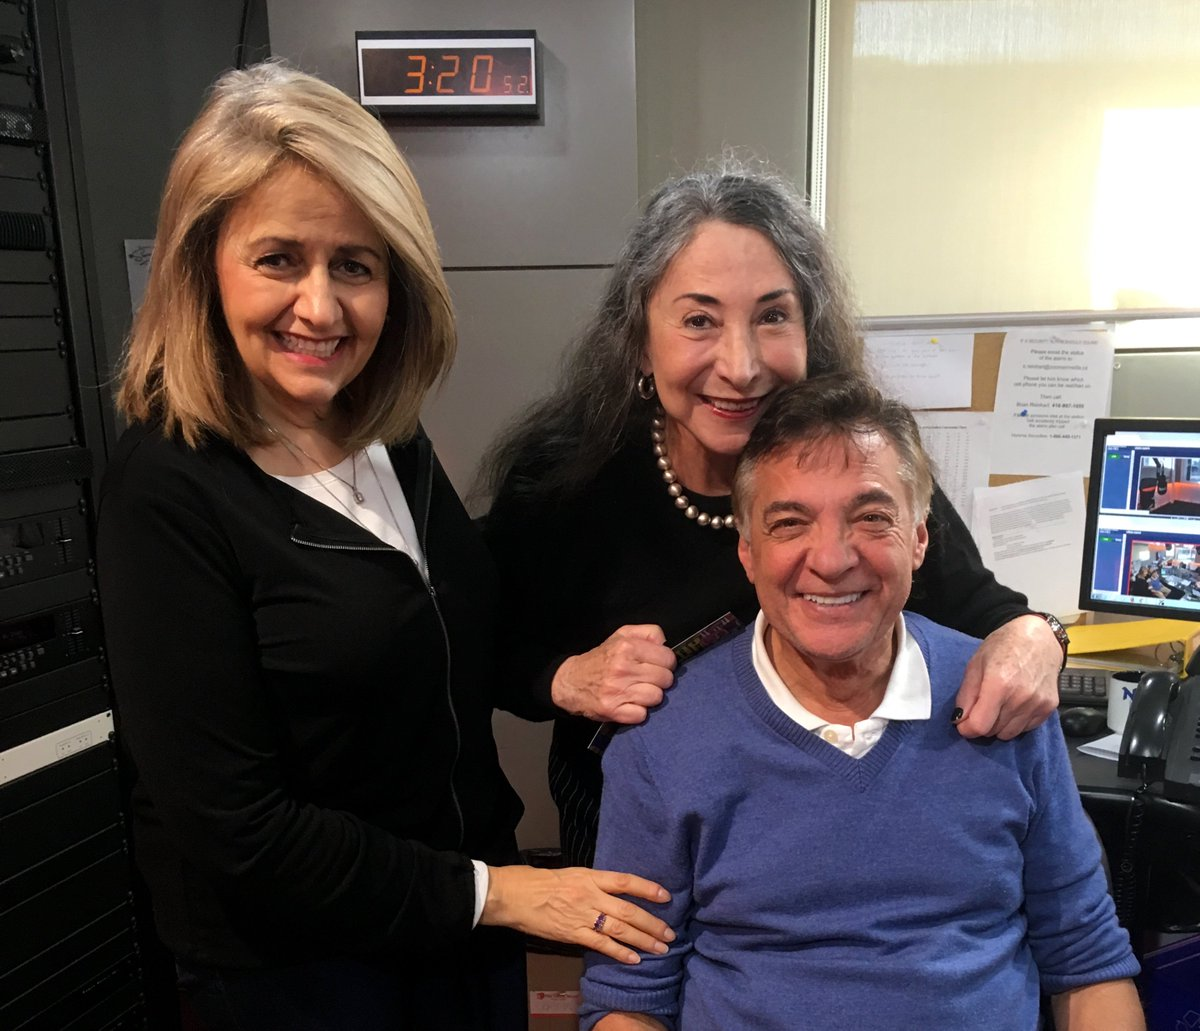 Marilyn Lightstone just gave @zoomerradio&#39;s Norm &amp; Eva the goods on Your All Time Classic #HitParade. #Watch:  http:// ow.ly/lDxk30glkBz  &nbsp;  <br>http://pic.twitter.com/IGMmxUCMIY